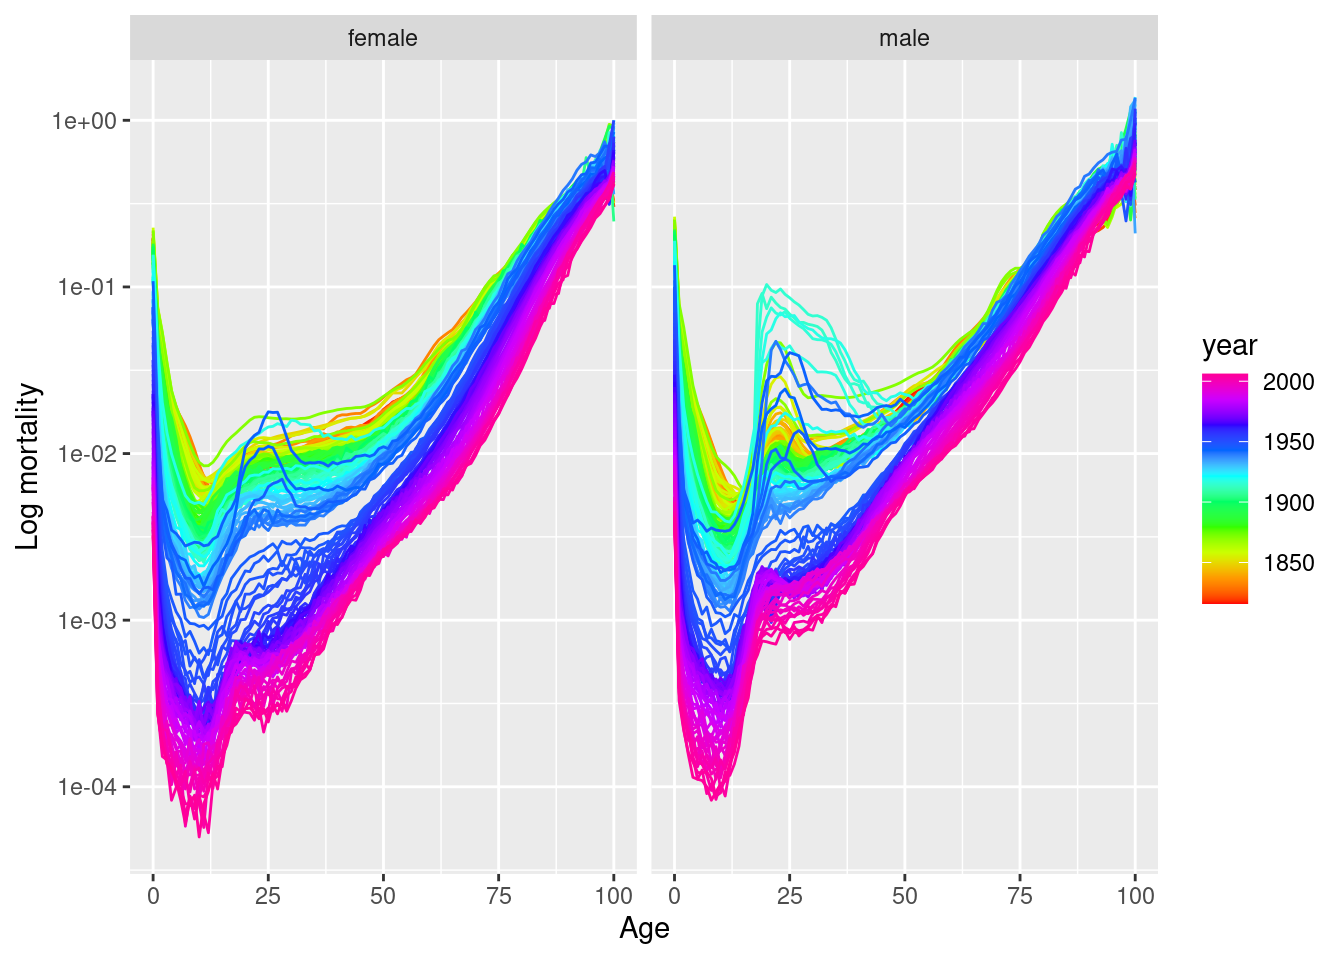 Using ggplot2 for functional time series